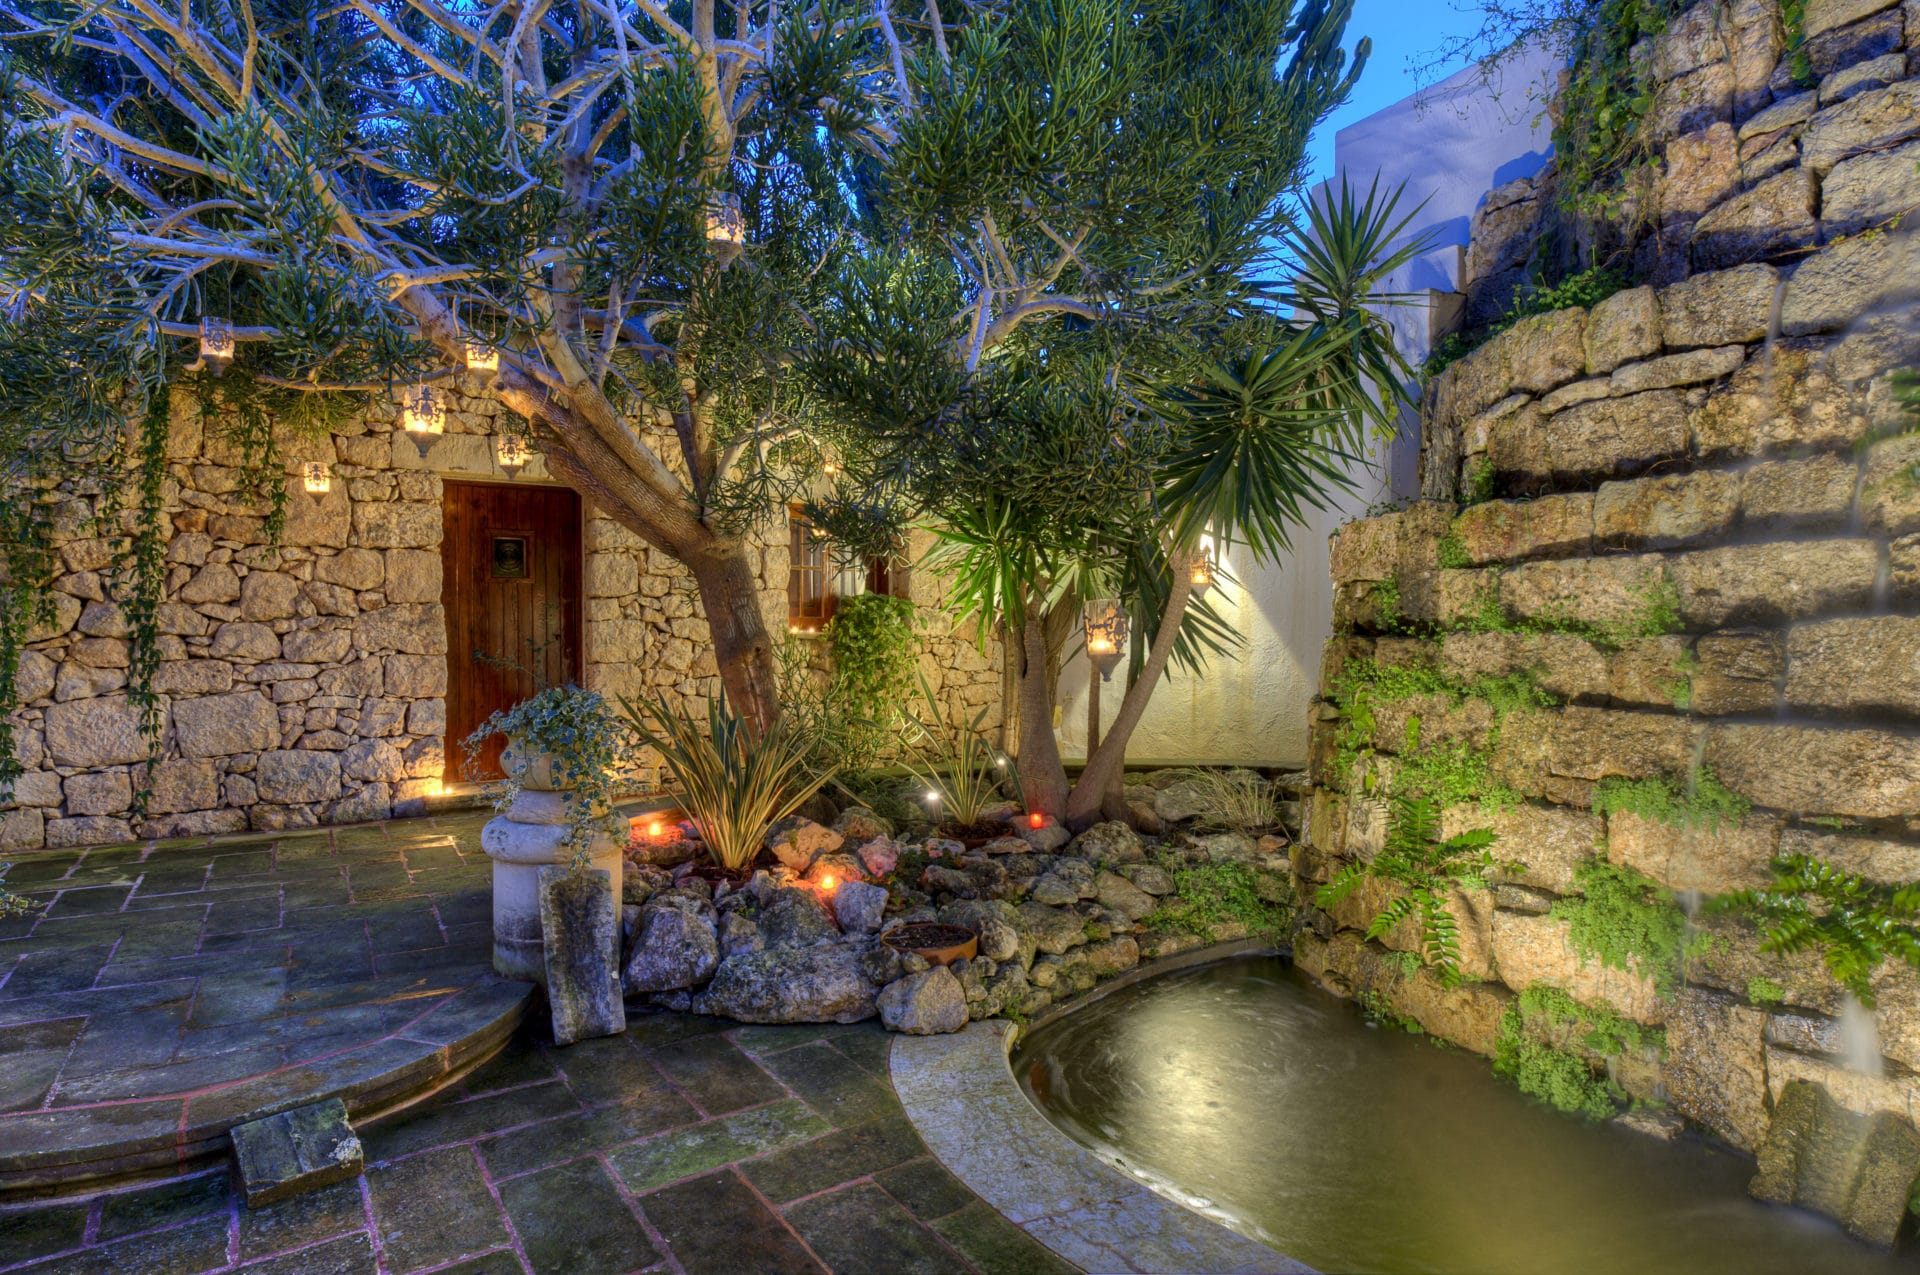 Garden – water feature, accent lighting, candles, landscaping, plants